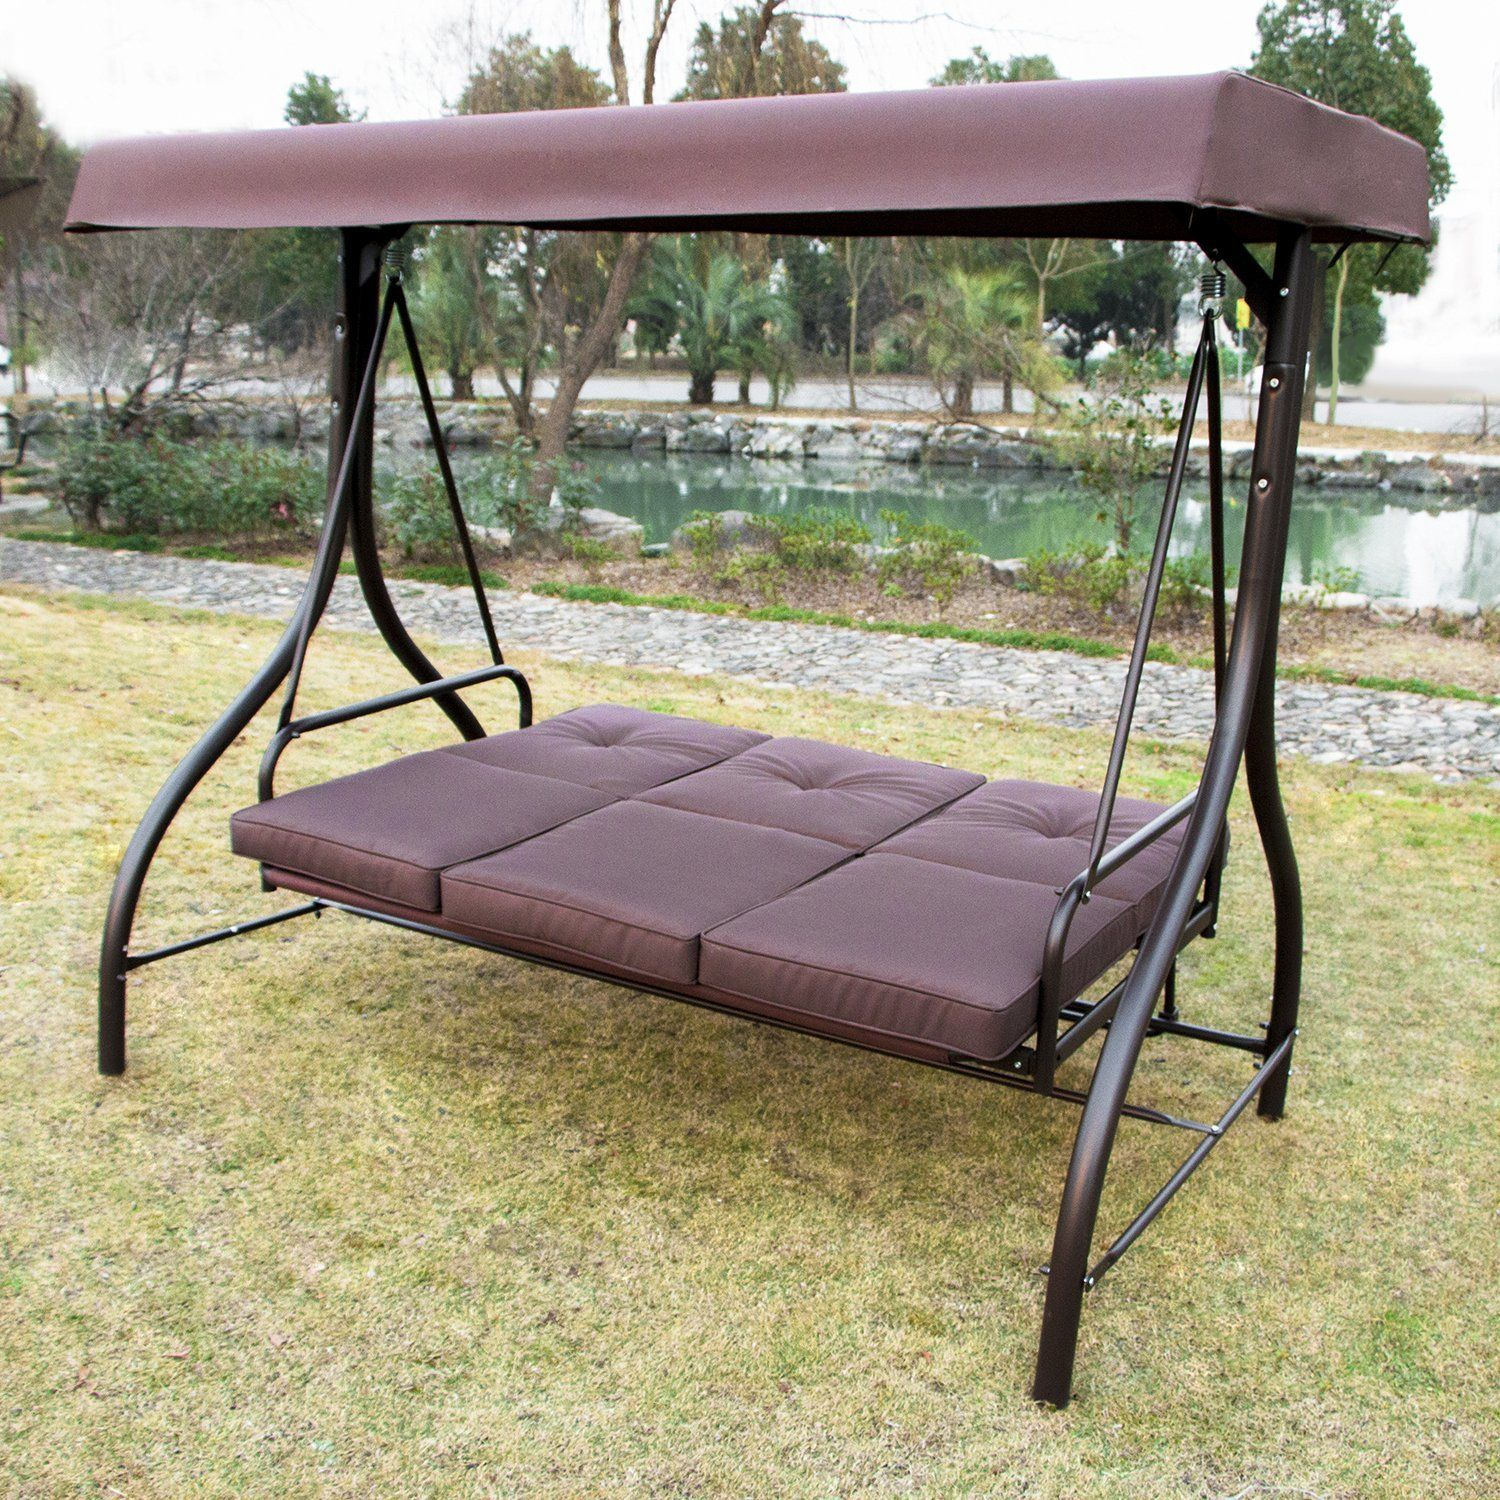 Amazon : Summer Promotion Outdoor Garden Yard Patio With Regard To Black Outdoor Durable Steel Frame Patio Swing Glider Bench Chairs (Photo 15 of 25)